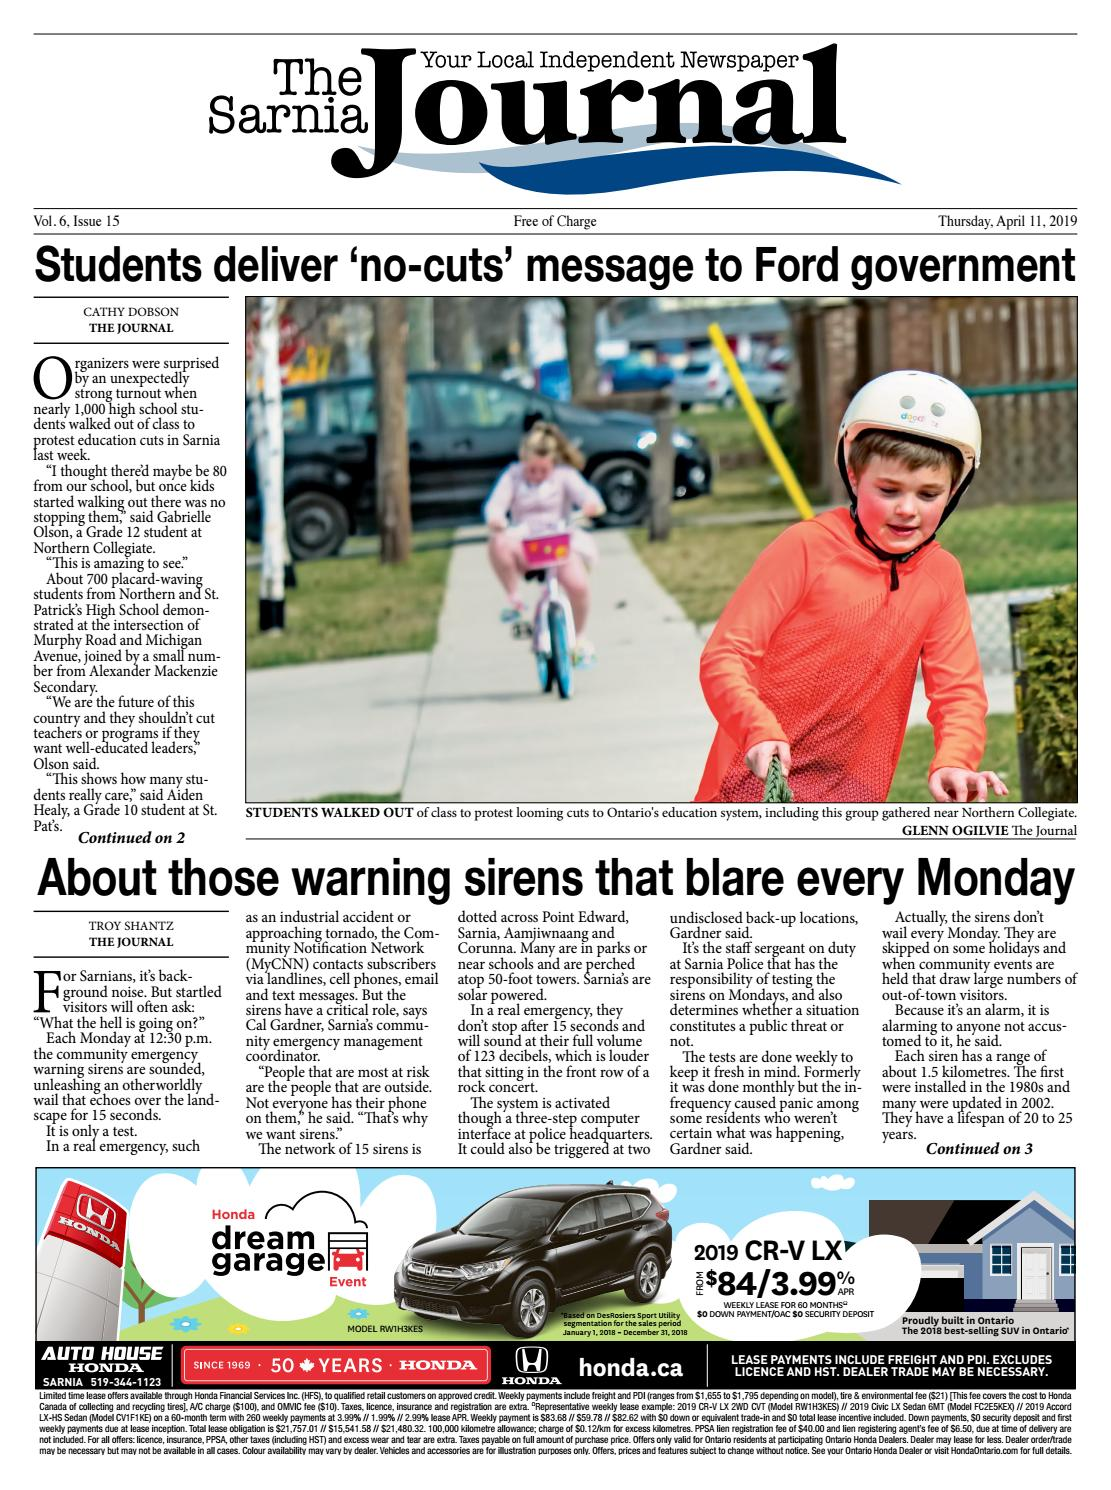 ee6d6e72 The Sarnia Journal - April 11 2019 by The Sarnia Journal - issuu